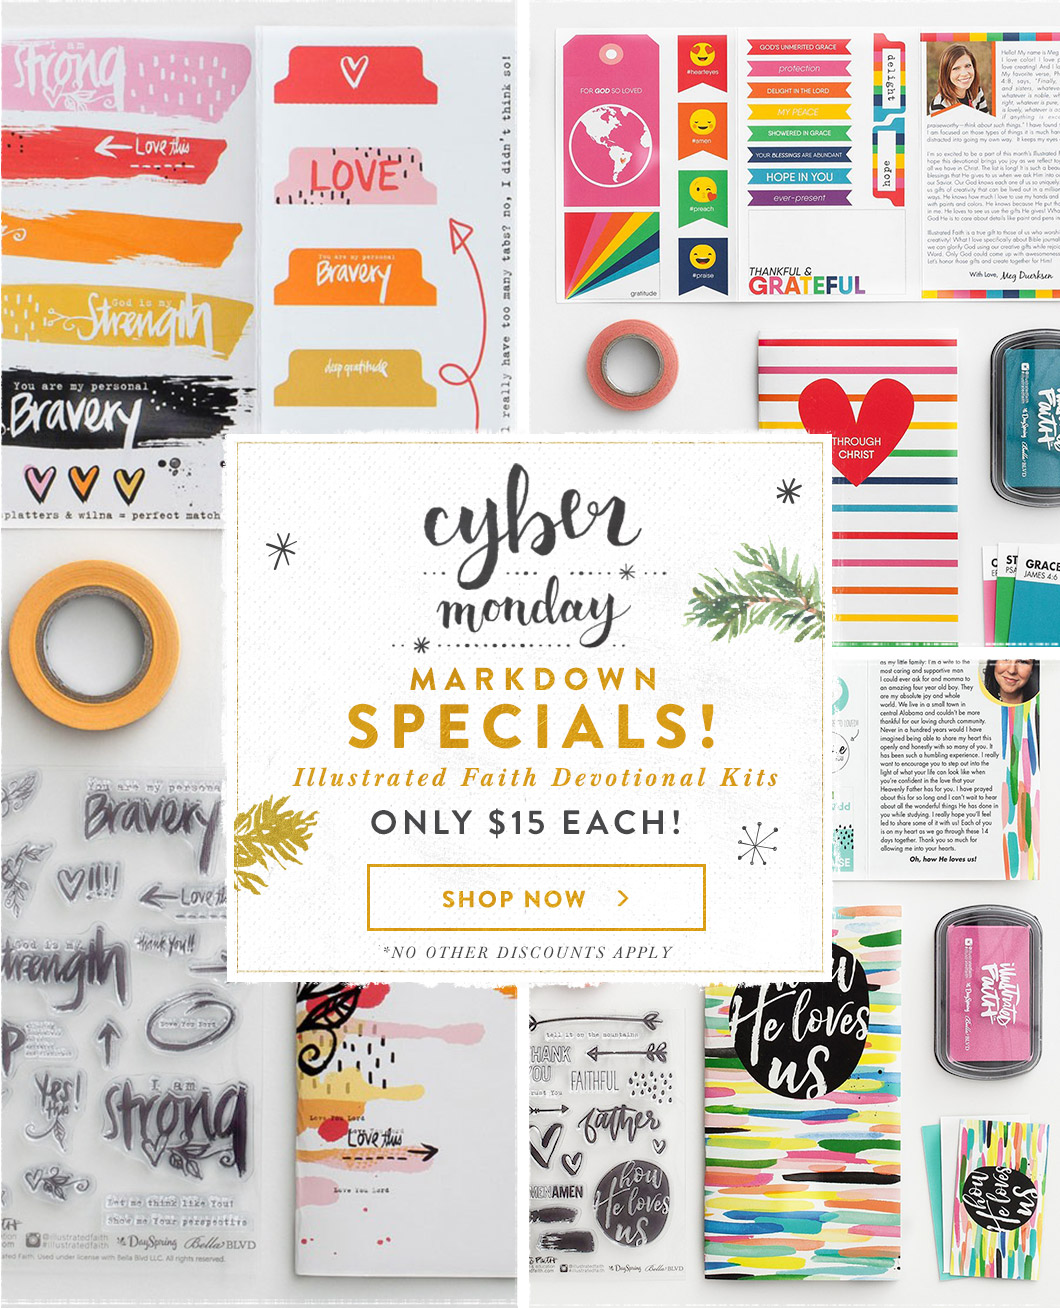 Even MORE $15 kits just ADDED!!!